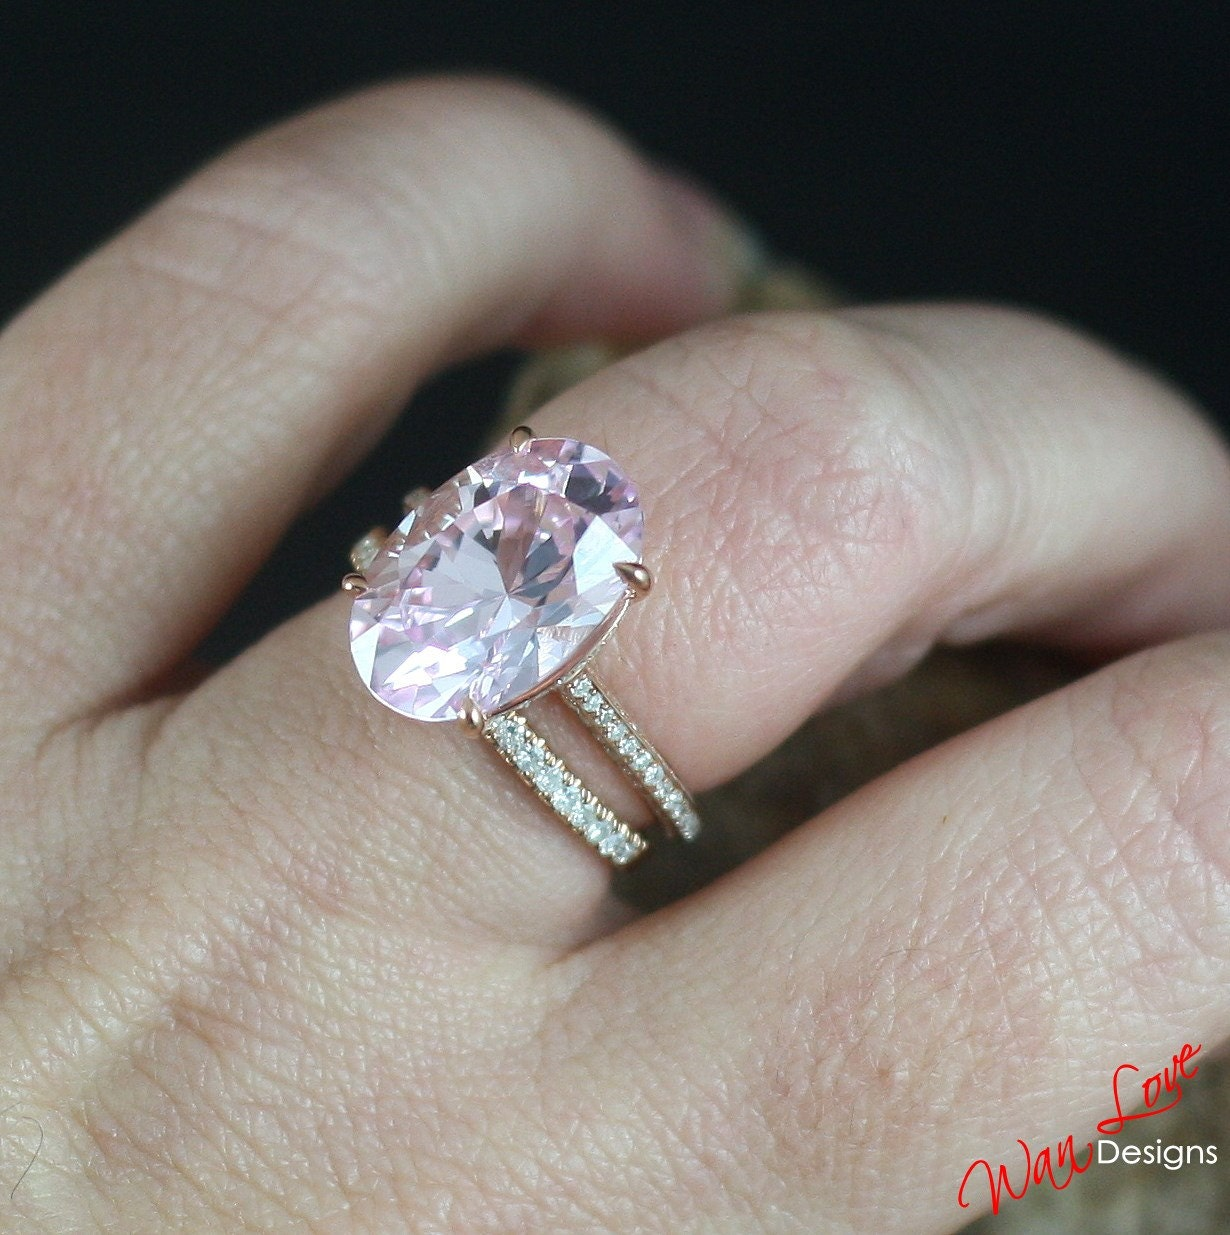 mv diamond en jaredstore zoom pink white created jared amp to sapphire jar gold ring square hover lab zm cut